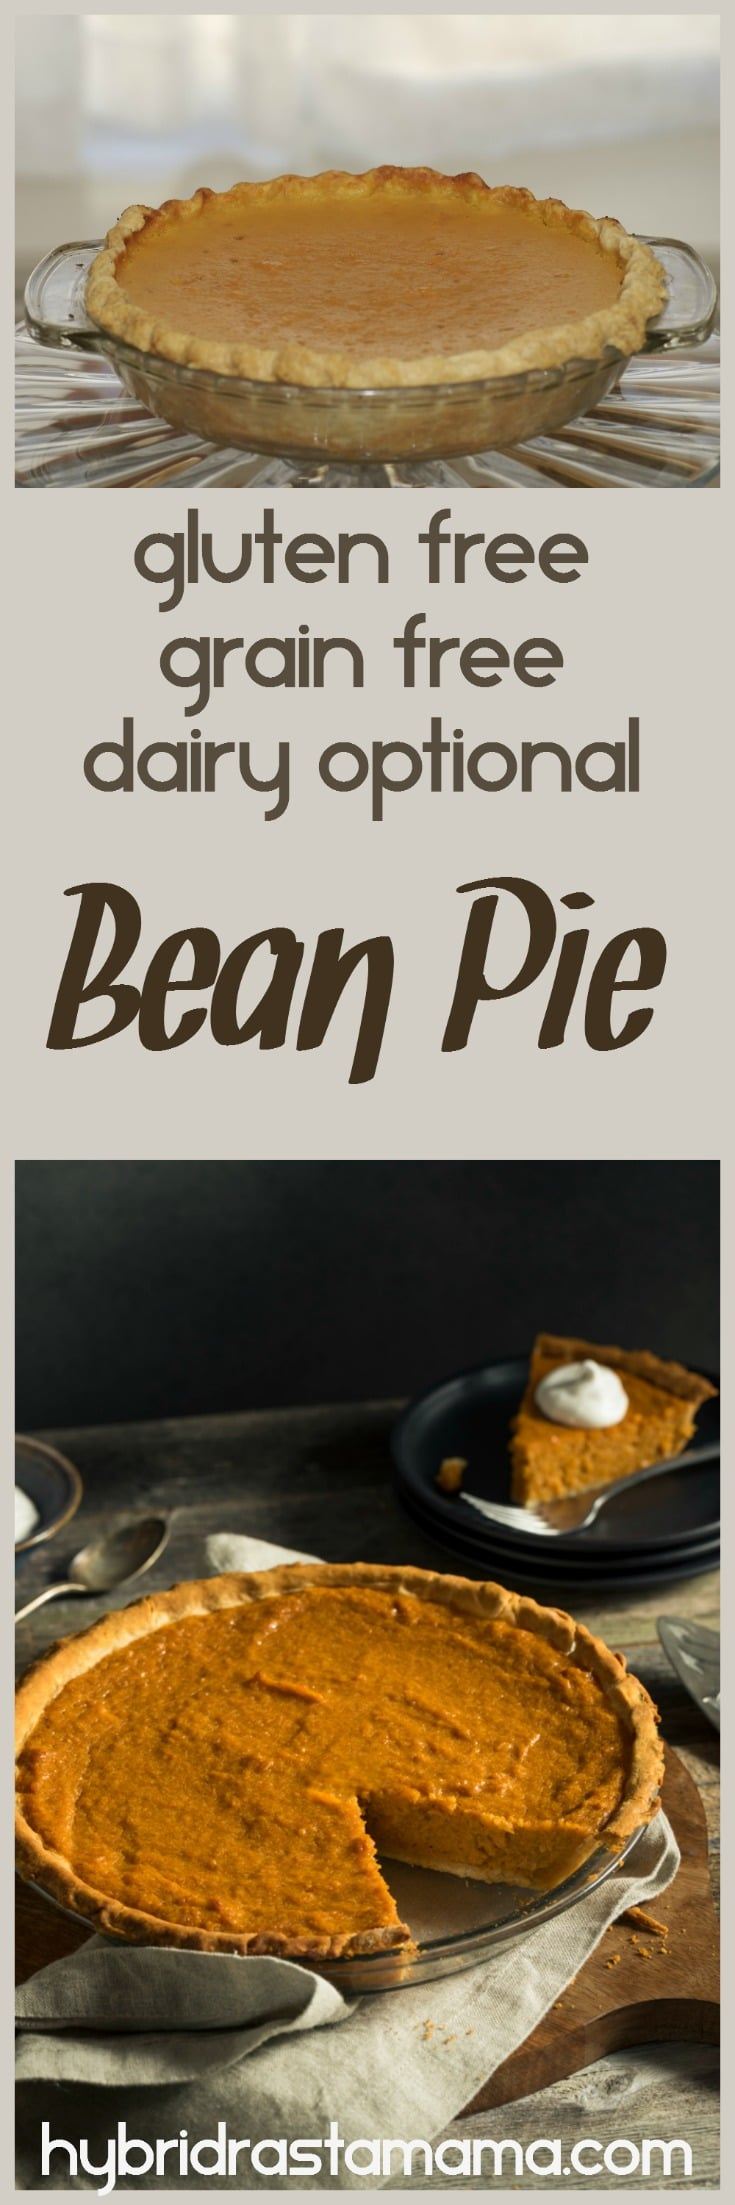 Ever heard of bean pie? Me neither. When I discovered it and took my first bite I was hooked for life. You will be too. This gluten free  and grain free version from HybridRastaMama.com is divine.